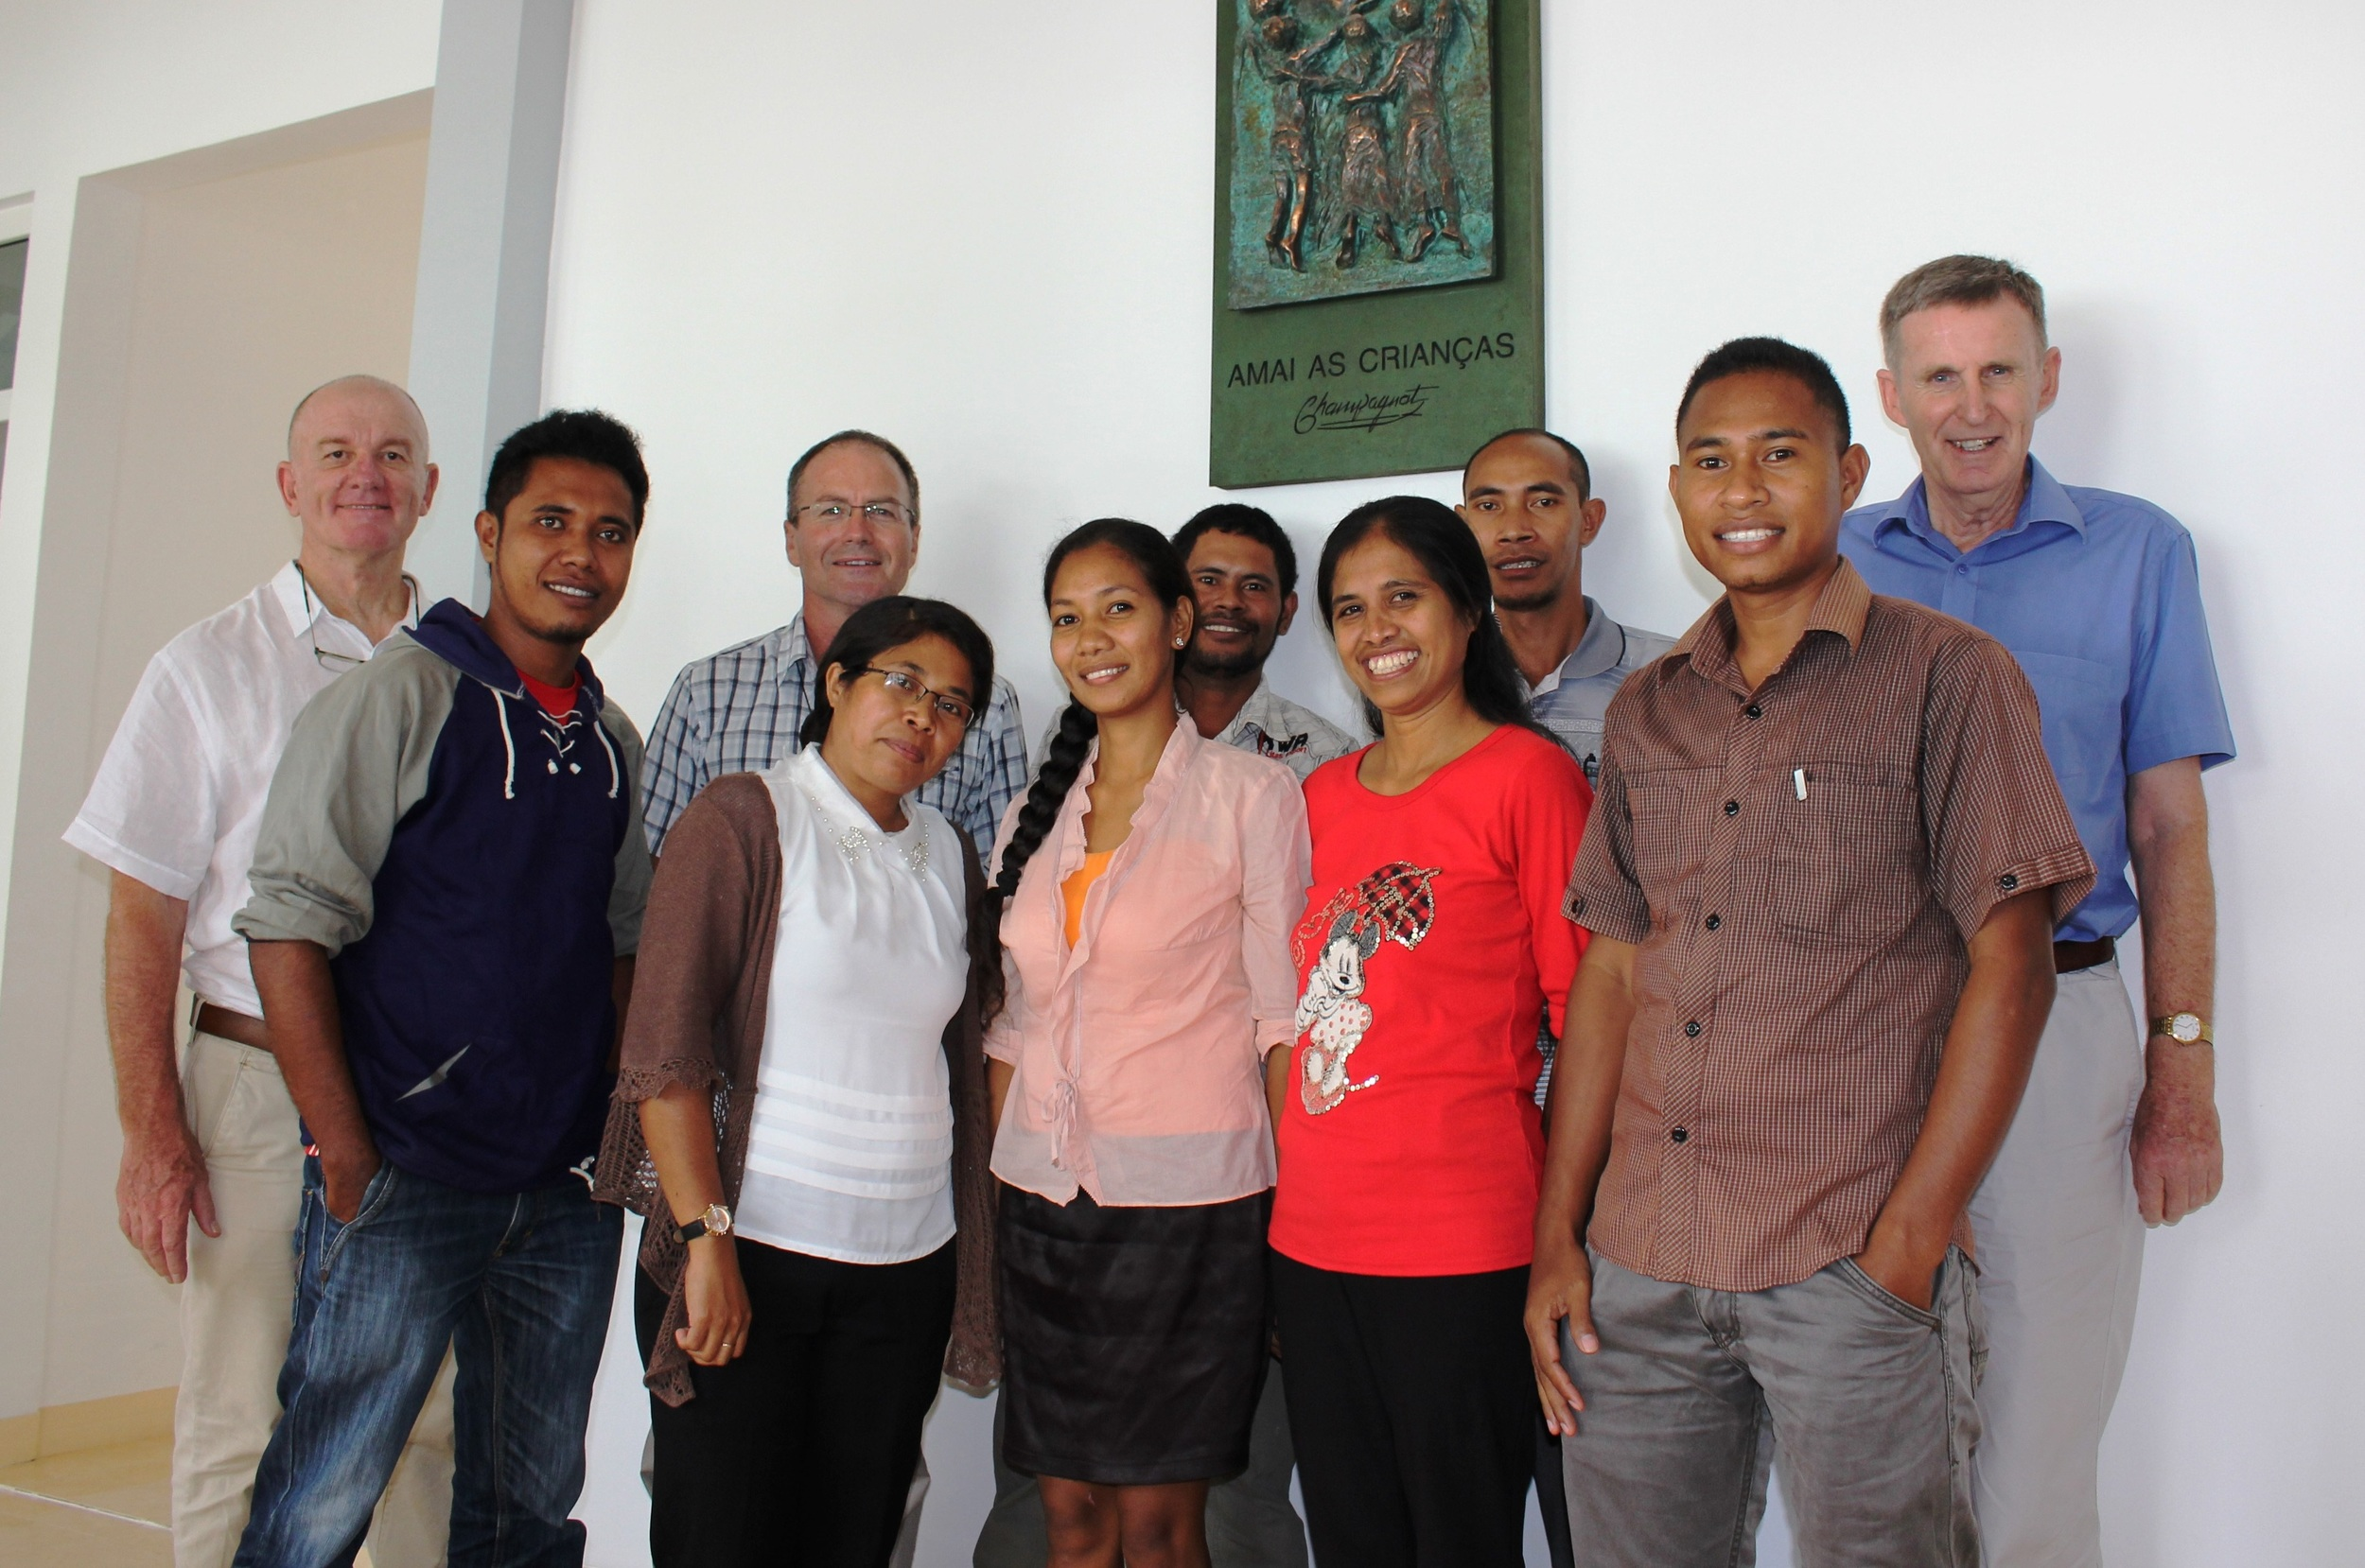 Brothers Peter, Tony and Michael with teaching staff at the Catholic Teachers College Baucau.